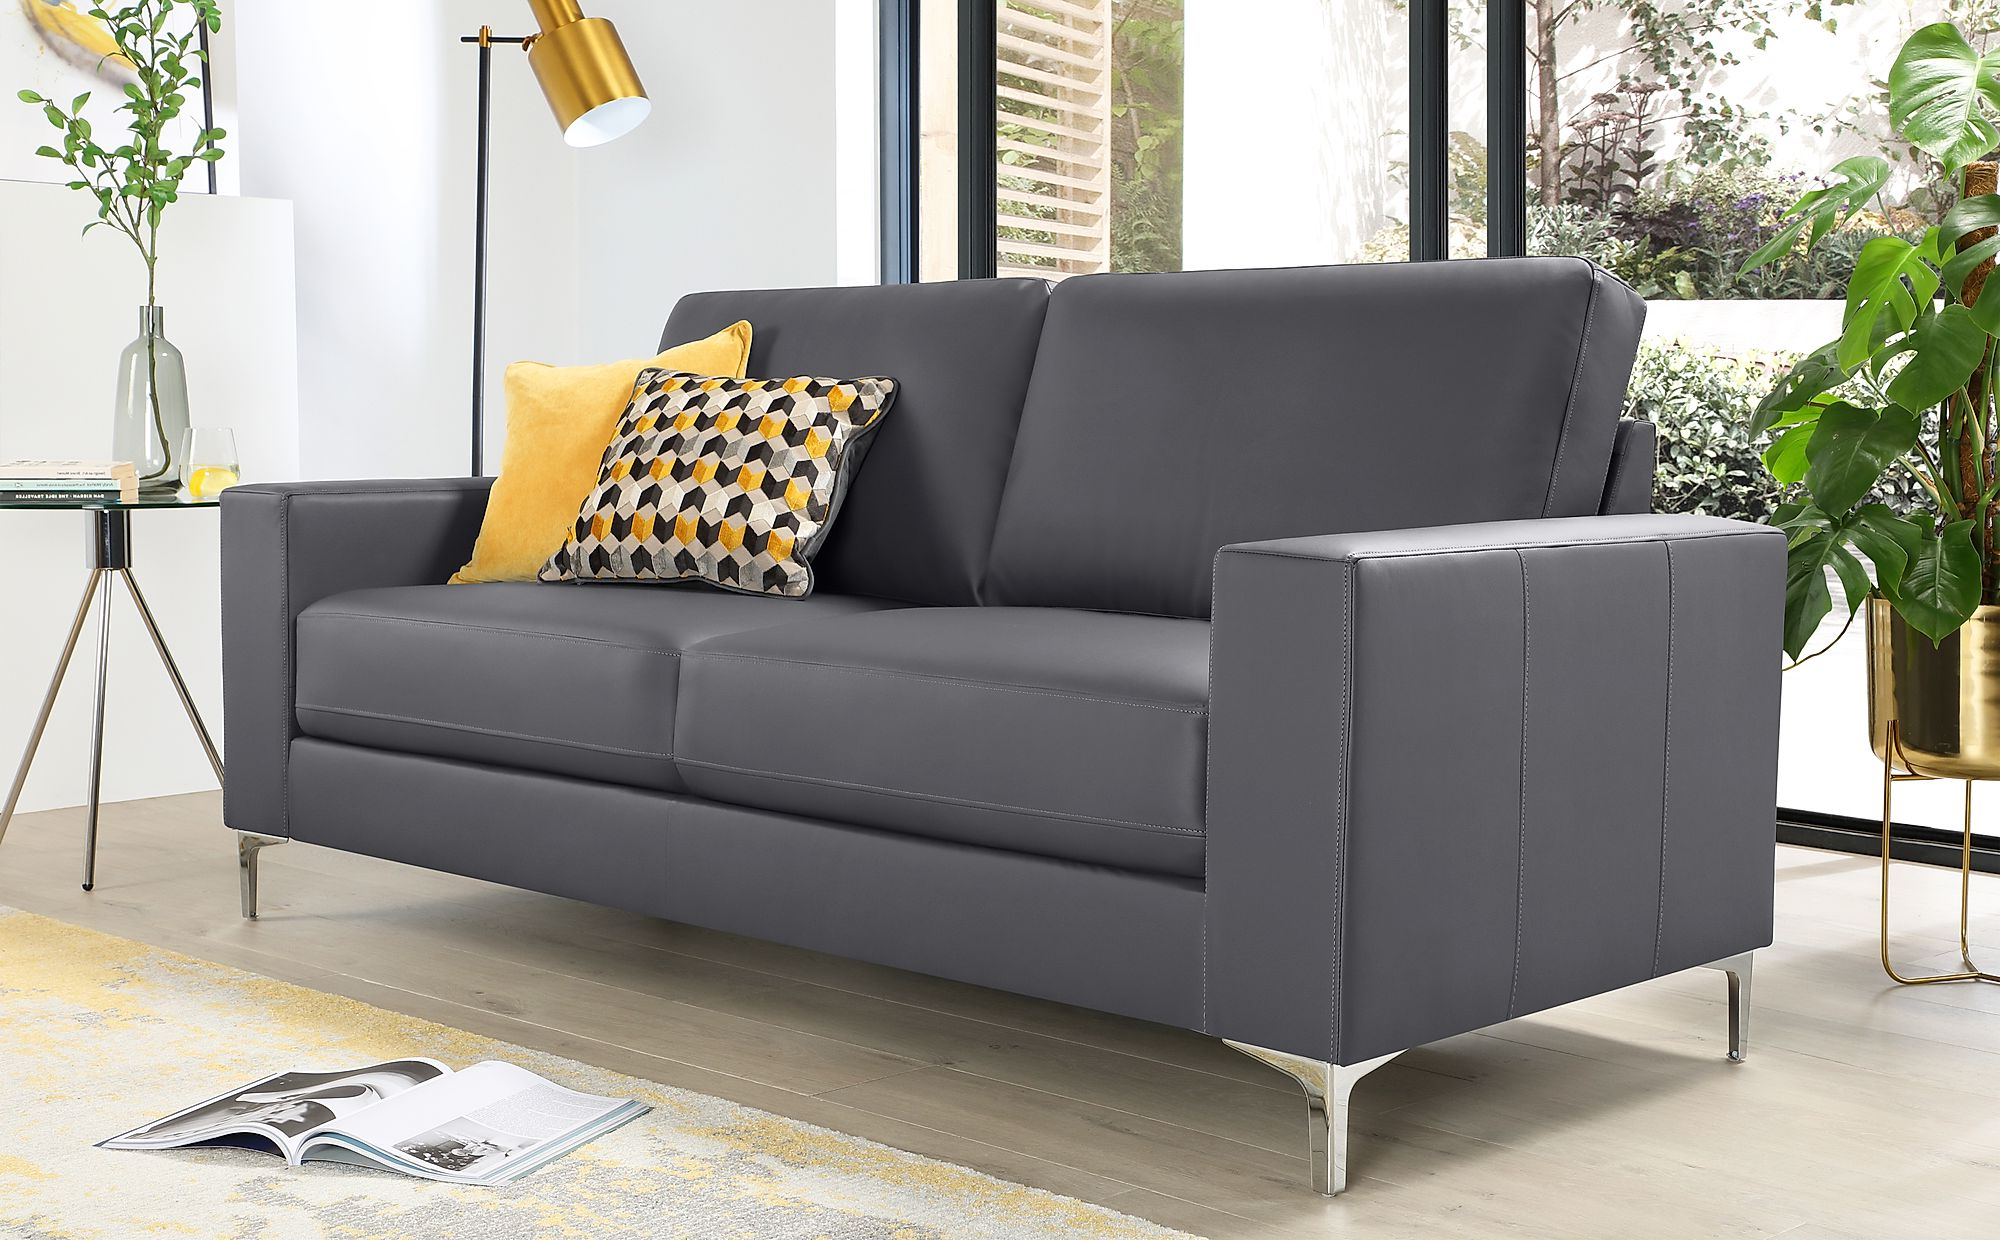 Baltimore Grey Leather 3 Seater Sofa (View 15 of 15)